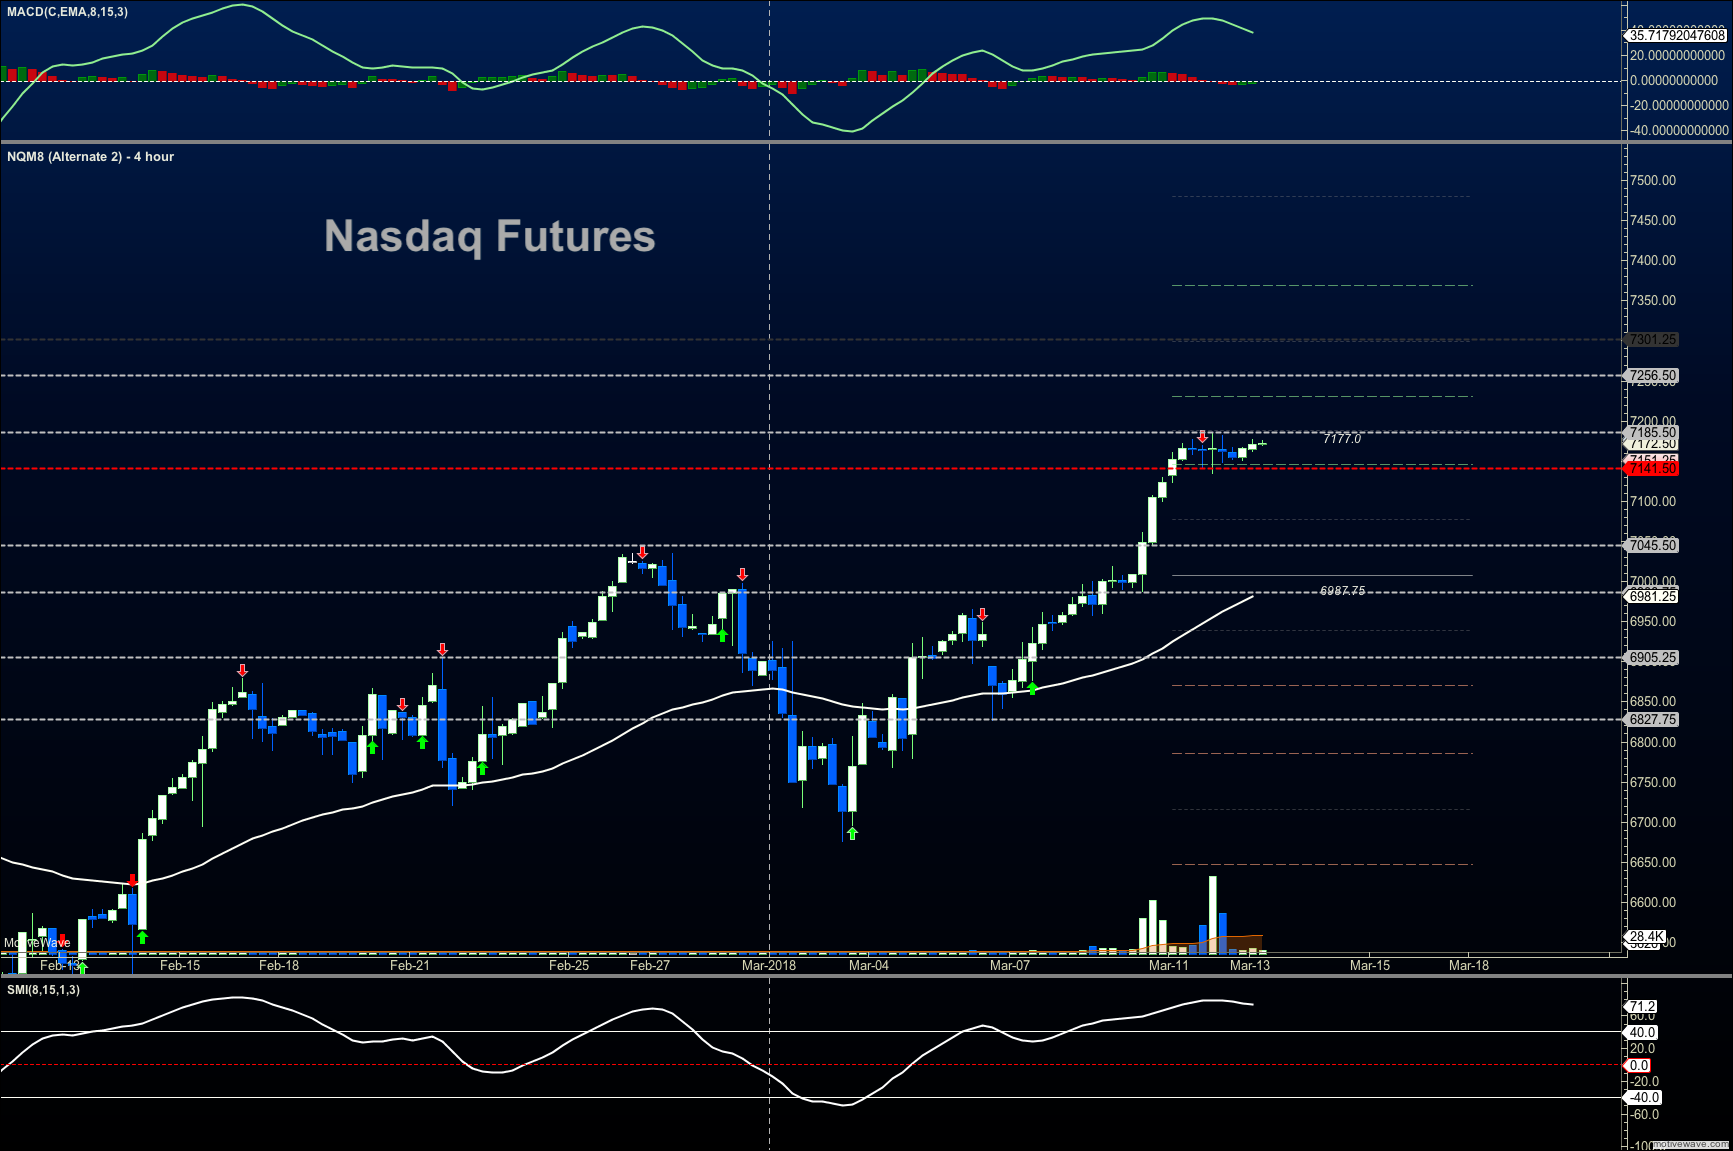 nasdaq futures trading resistance march 13 news research